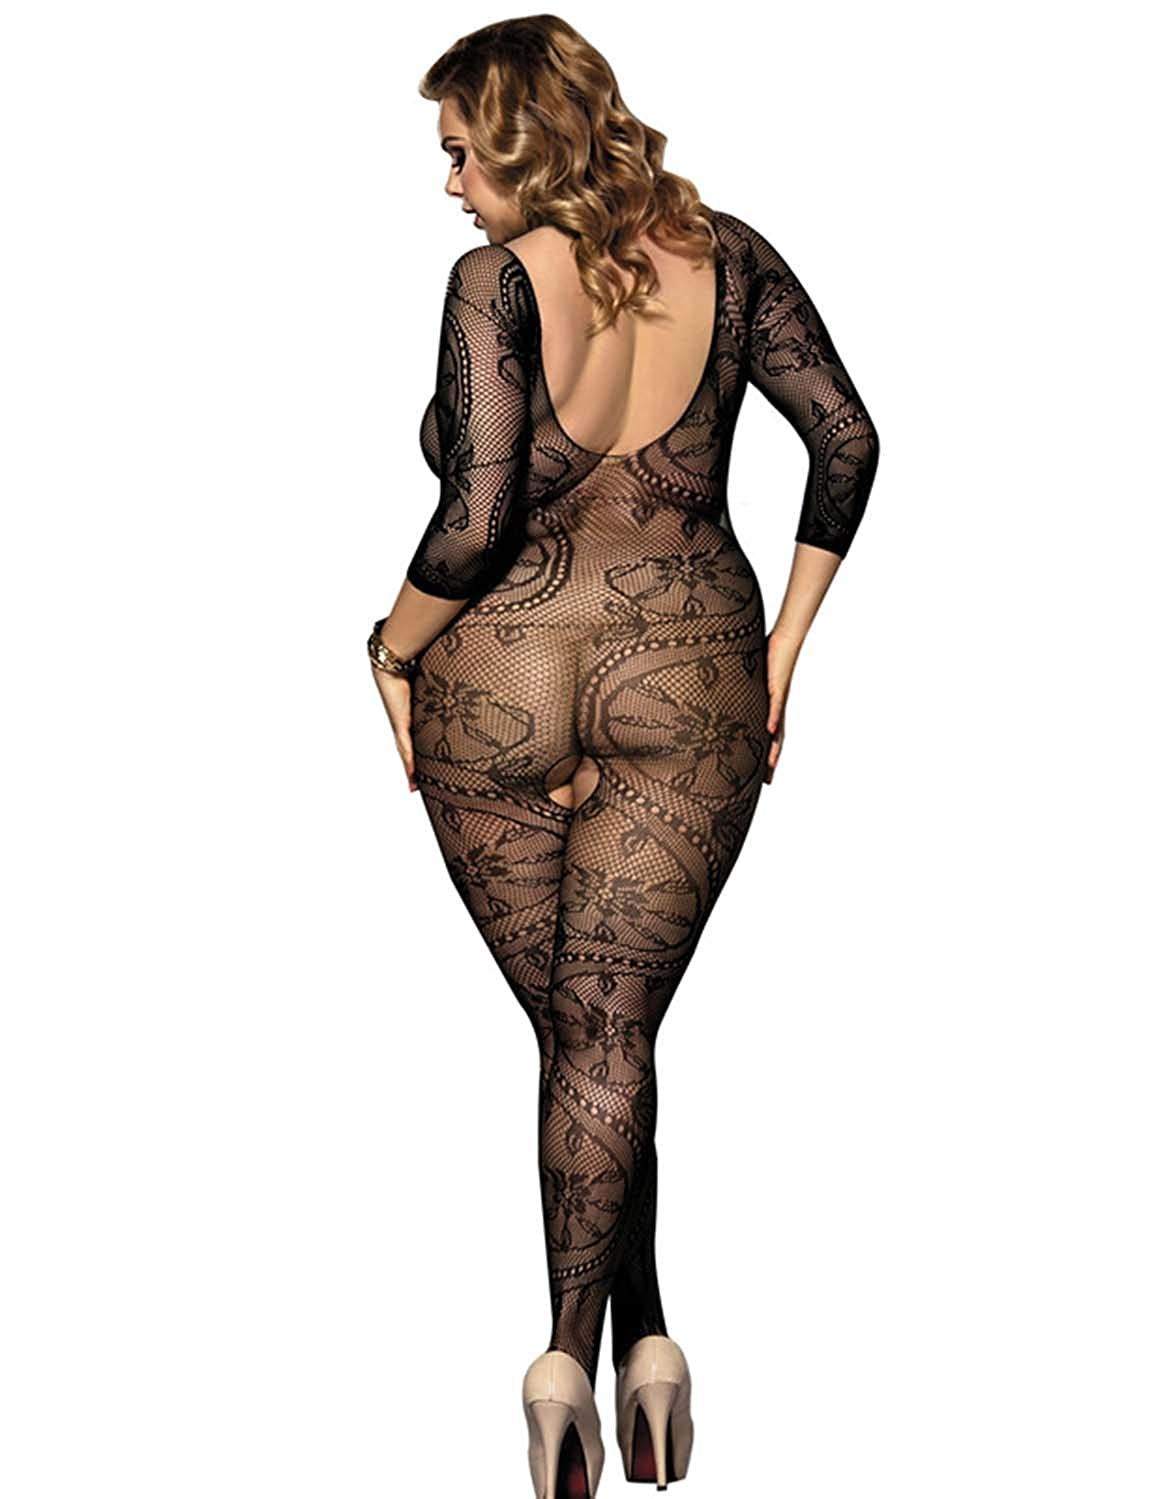 c5c30f5708e Vivilover Women s Sexy Plus Size Fishnet Bodystocking Lingerie (Long Sleeve  Style